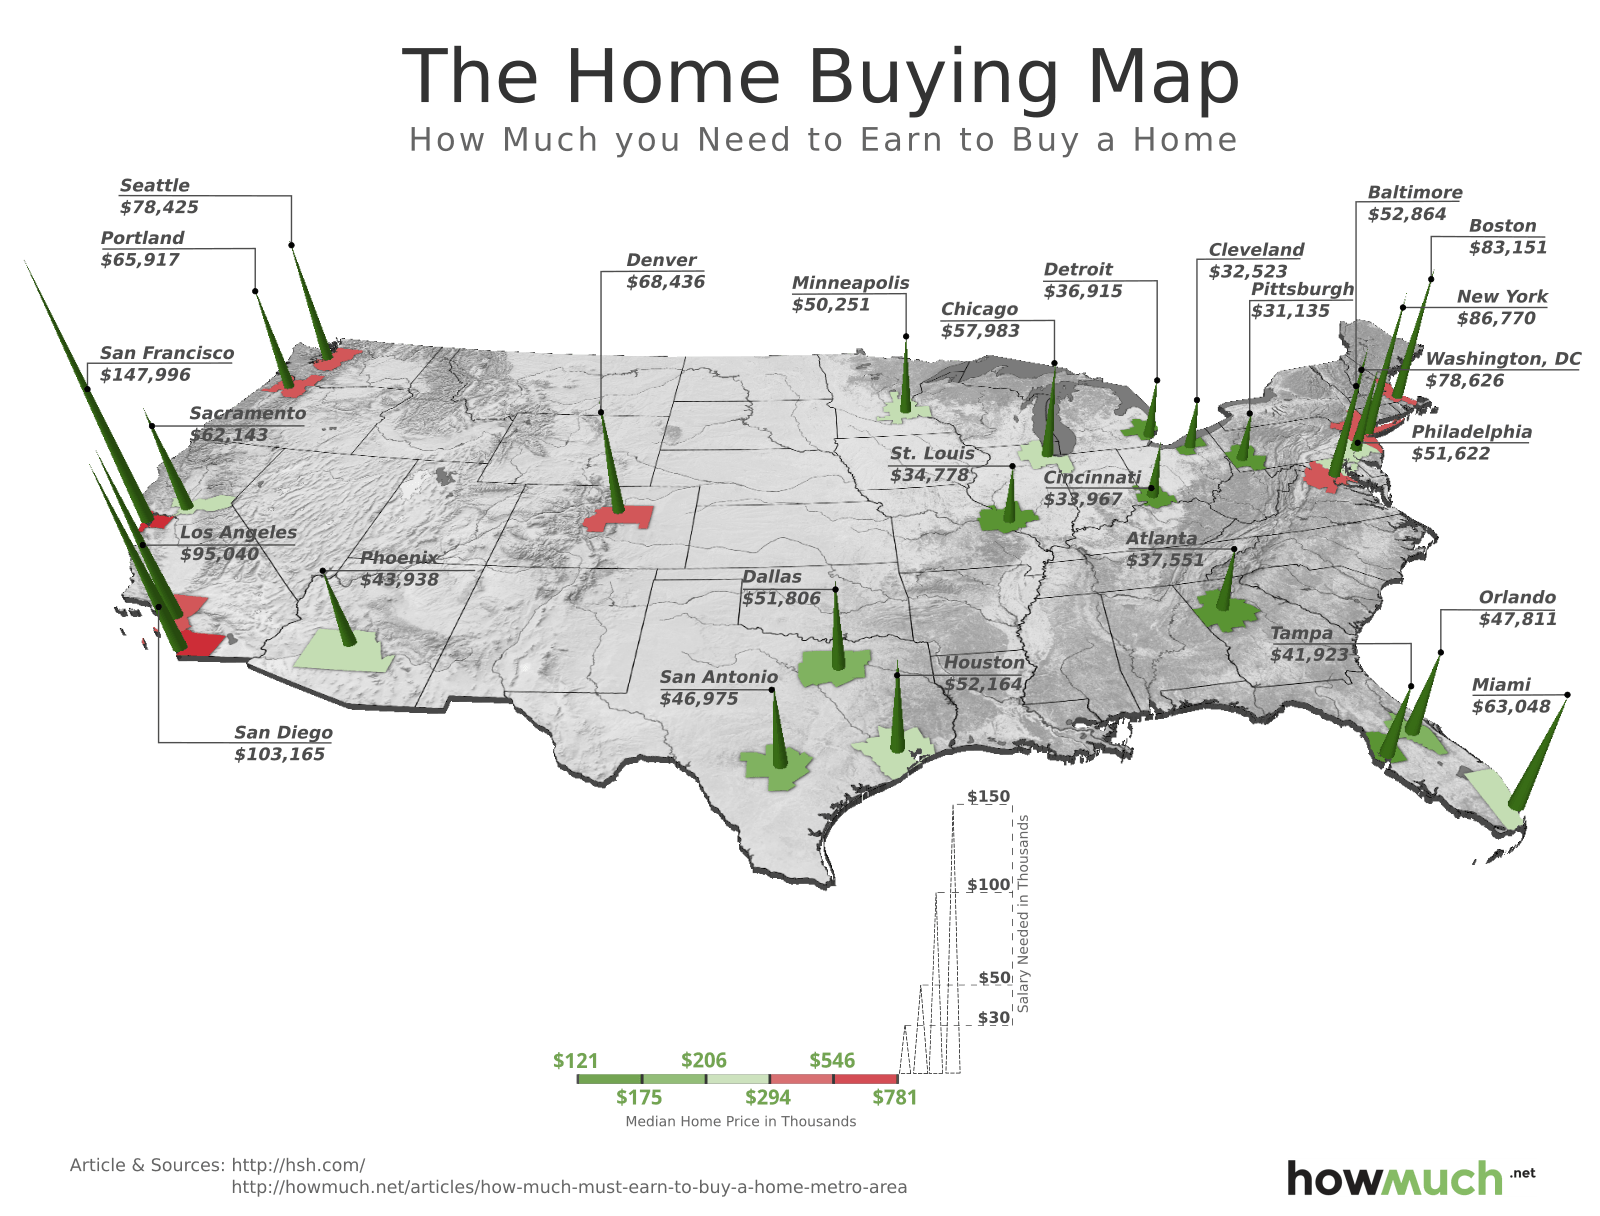 the-home-buying-map-final-image-5a65.png